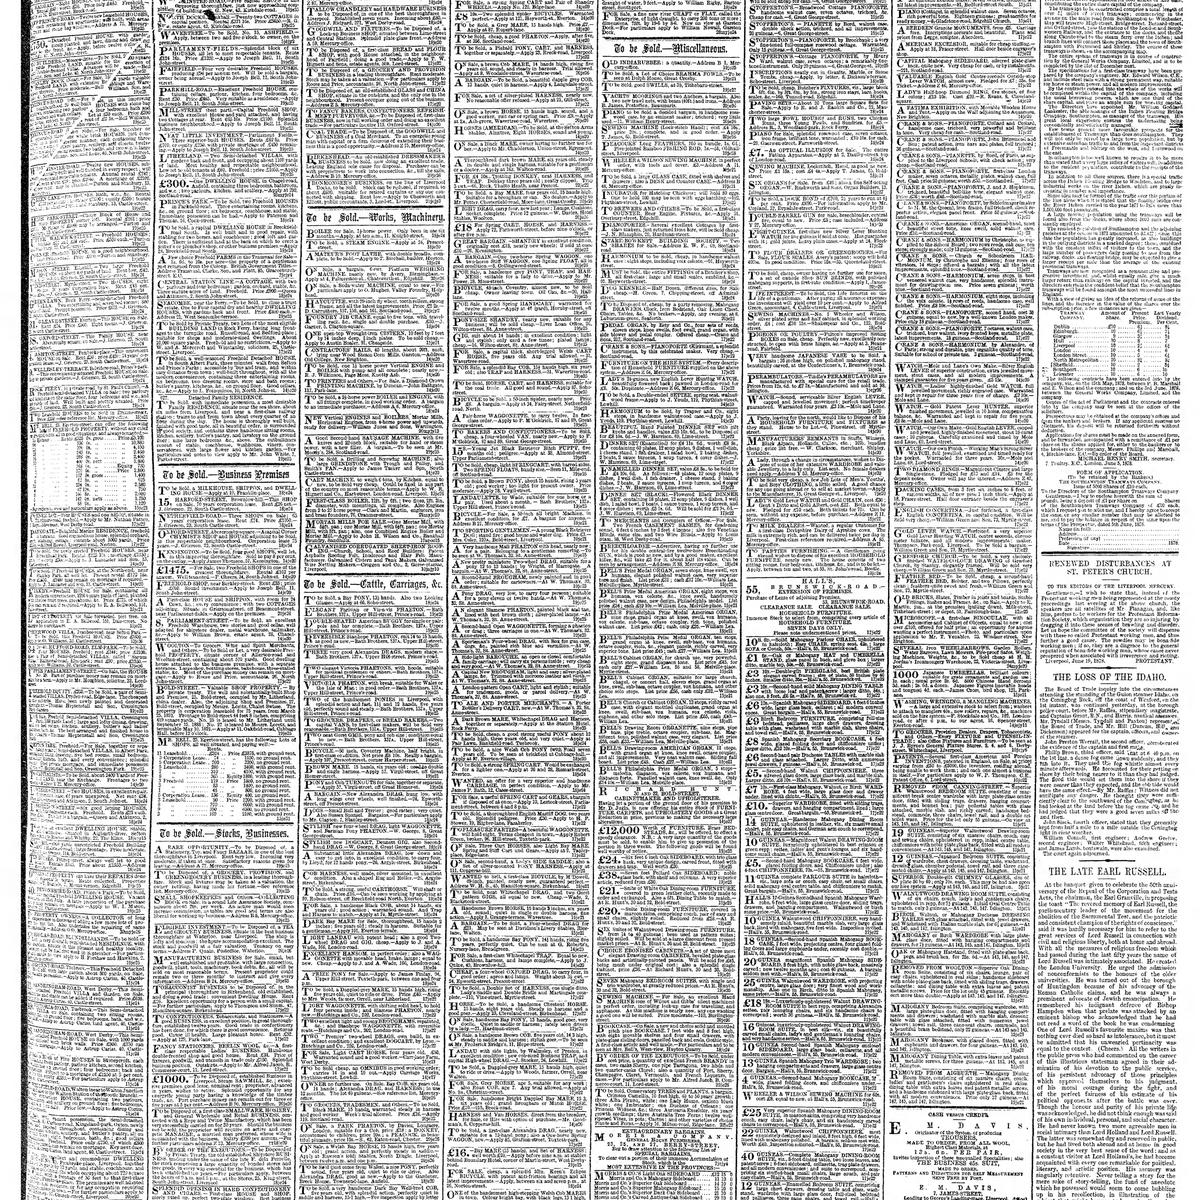 The Liverpool Mercury, 1878-06-20, page 3